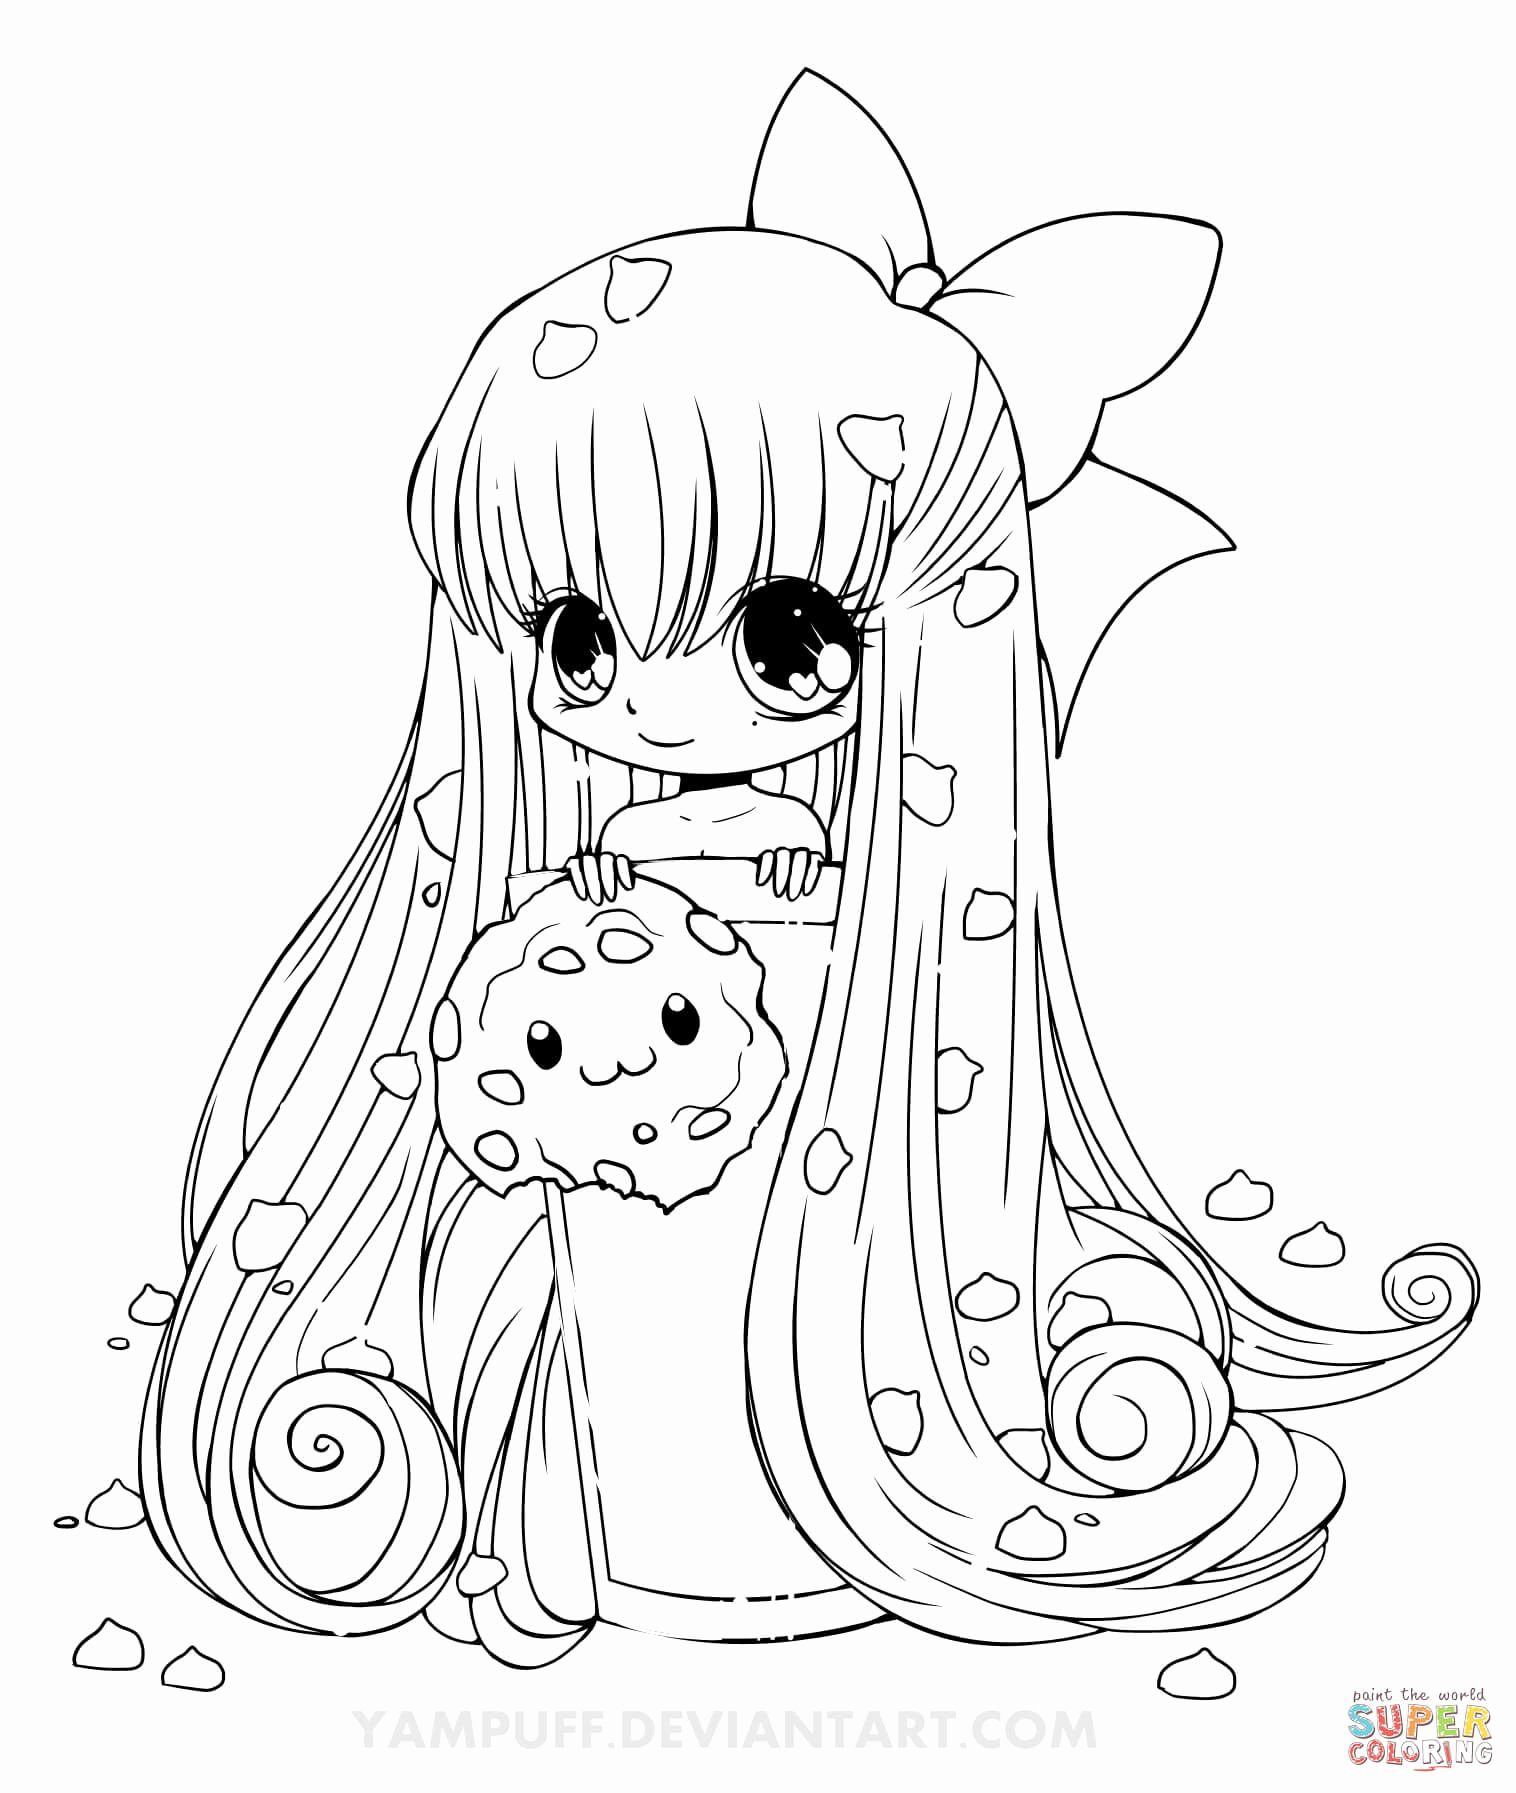 38+ Chibi kawaii cute coloring pages for girls ideas